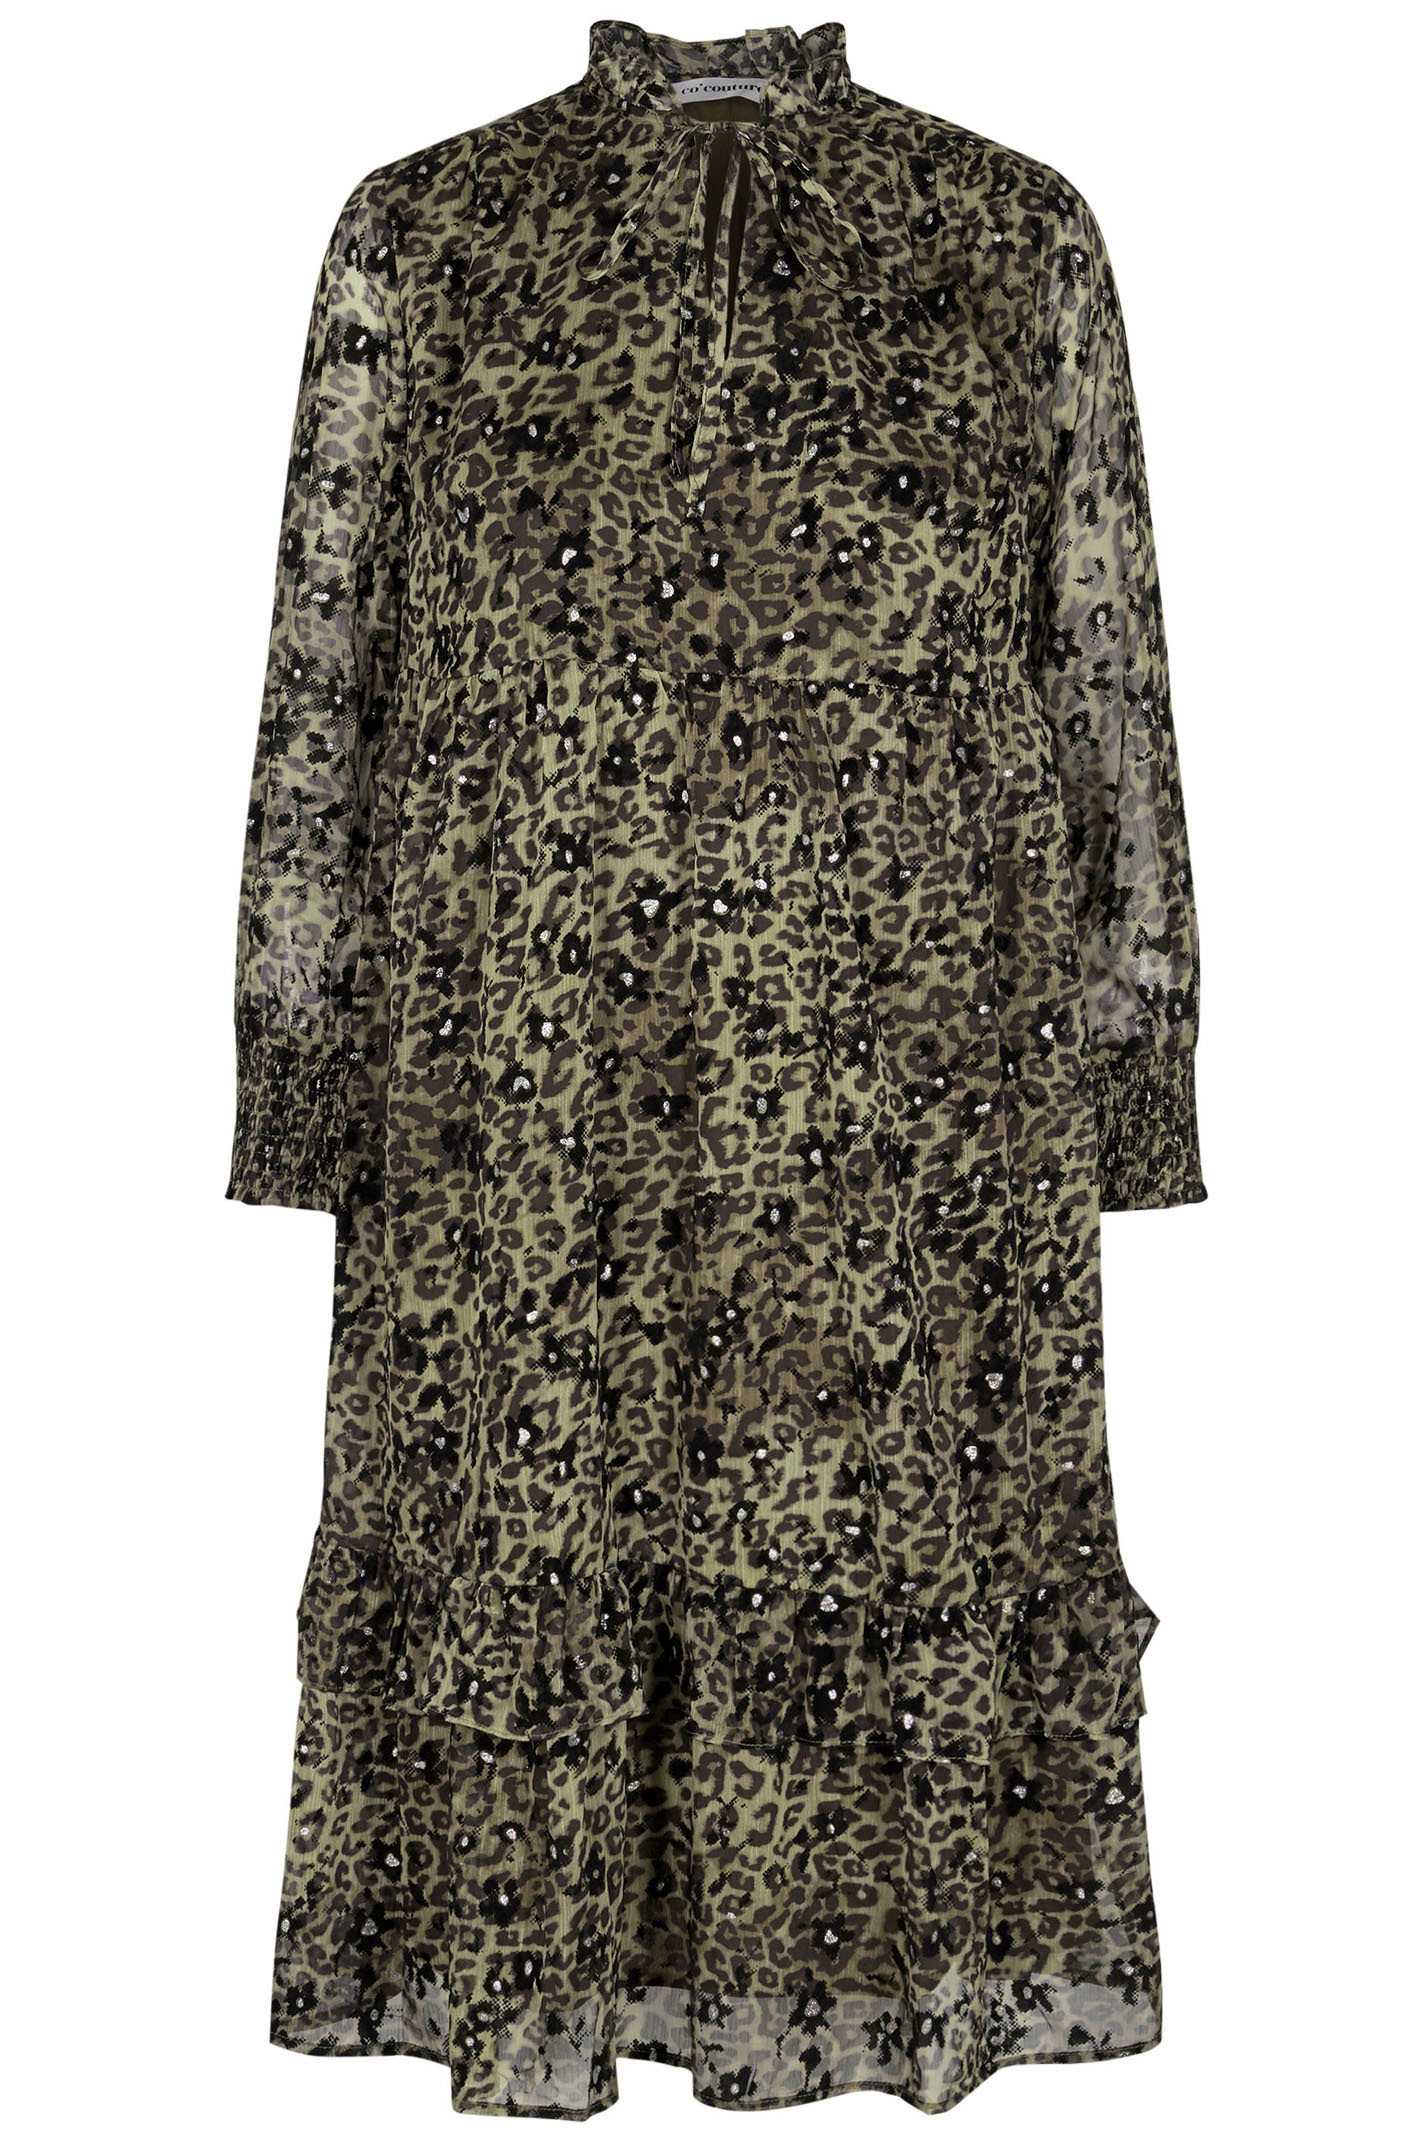 CO'COUTURE GEMMA FRILL 96182 ARMY